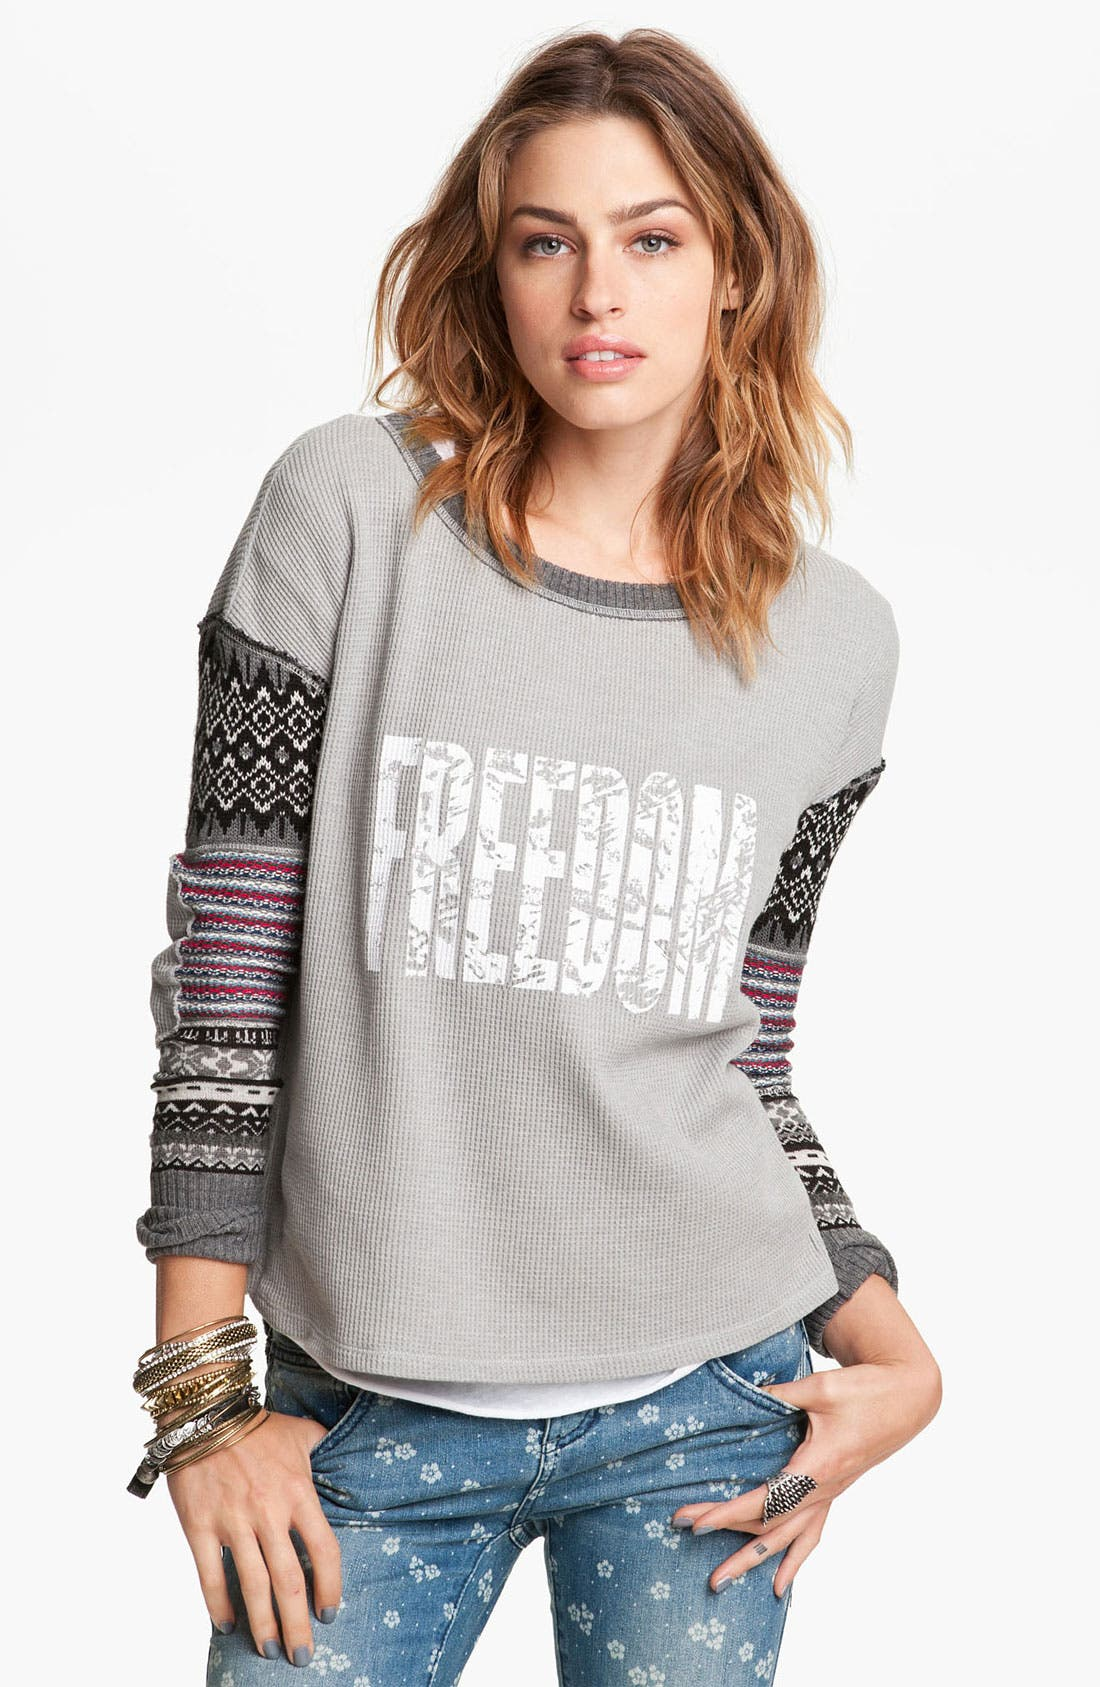 Alternate Image 1 Selected - Free People 'Freedom' Mixed Media Top